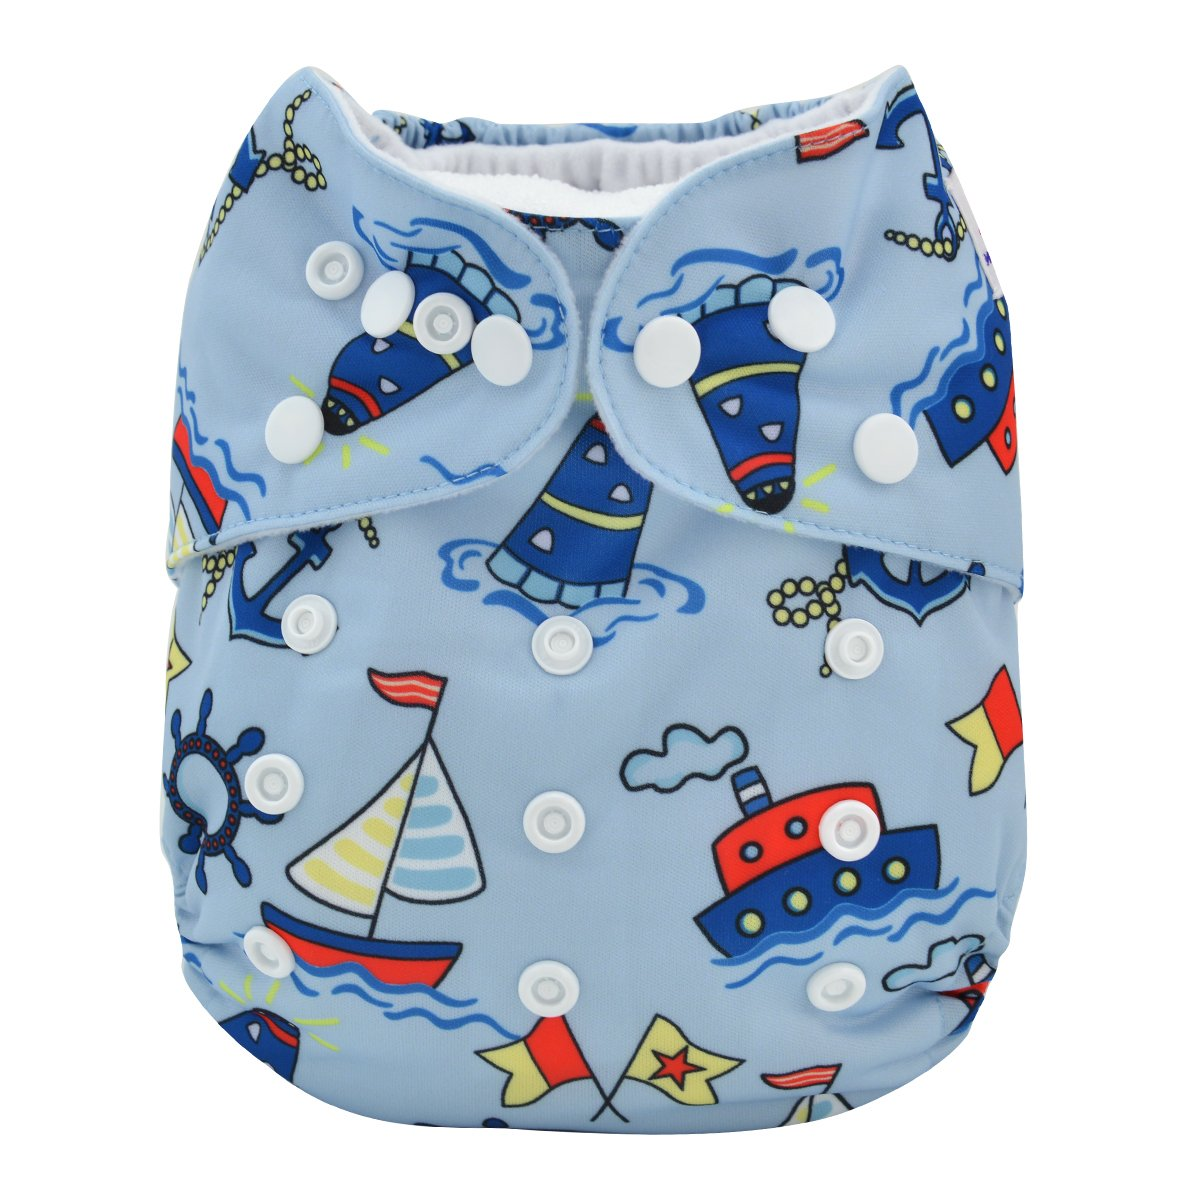 ALVABABY Baby Cloth Diaper One Size Adjustable Reuseable Washable Nappy One Pack with 2 Inserts AMD16